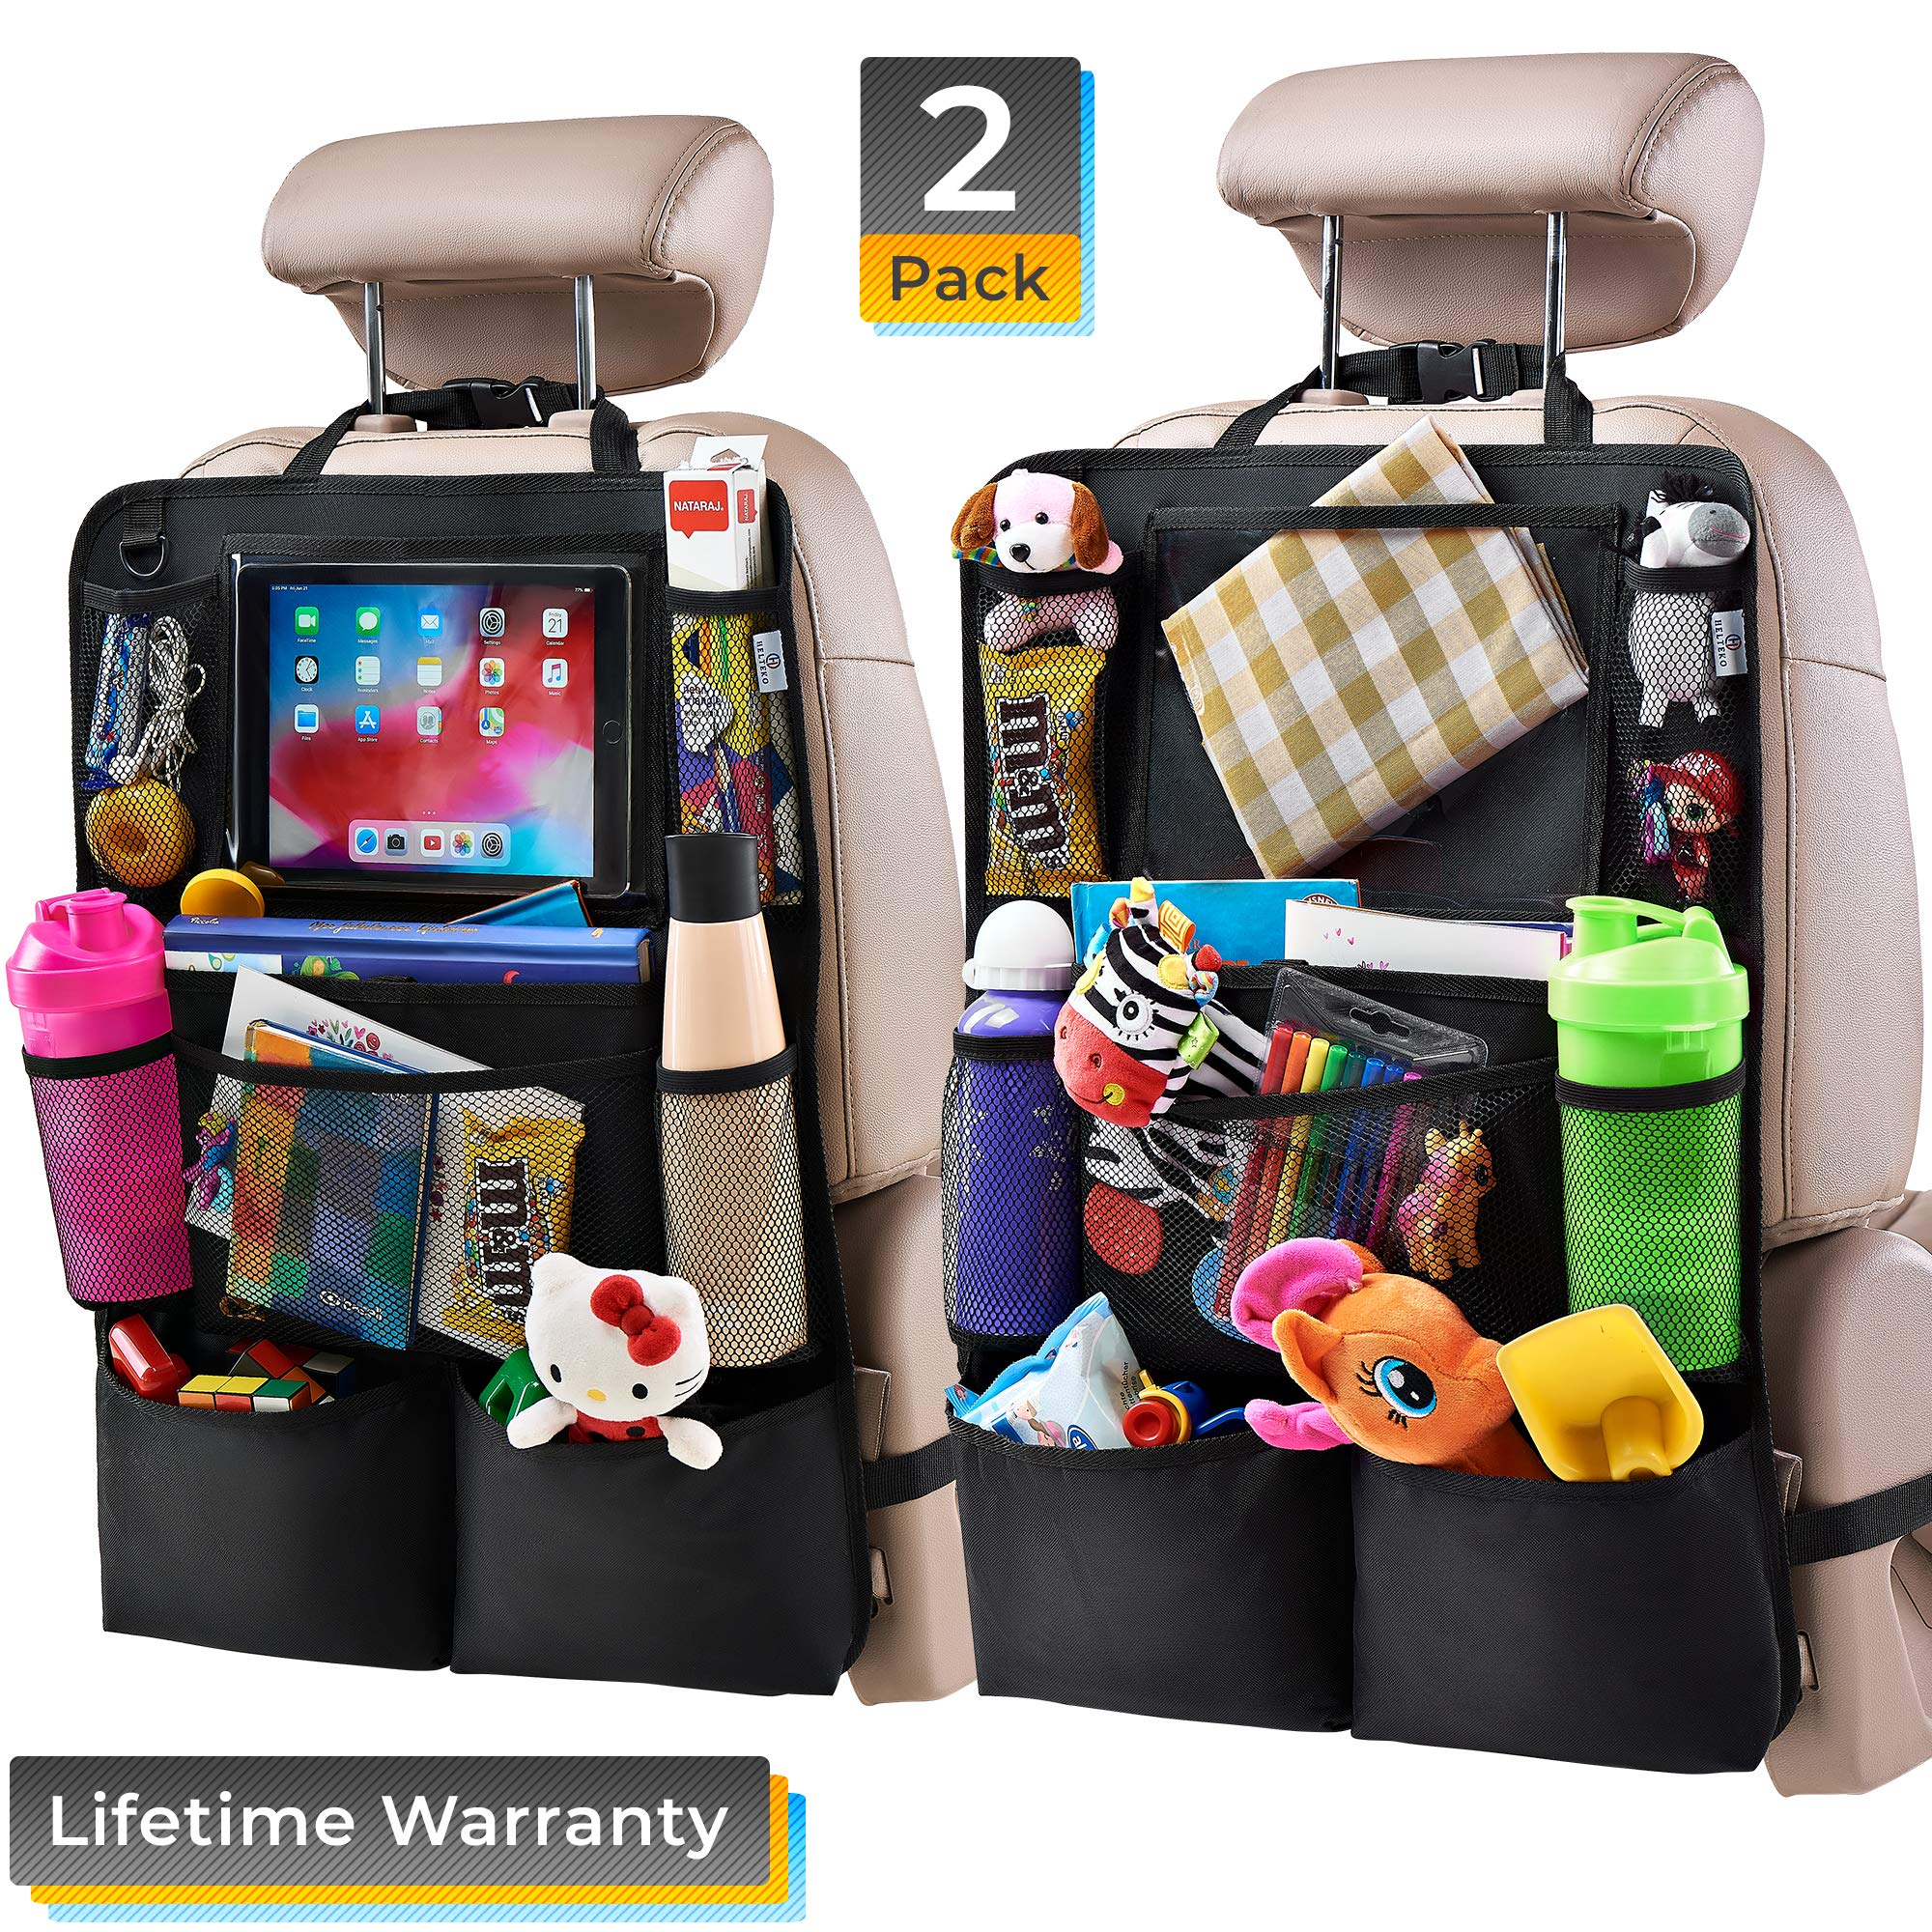 Helteko Backseat Car Organizer - Kick Mats Back Seat Protector with 10'' Tablet Holder - Car Back Seat Organizer for Kids - Car Travel Accessories - Kick Mat with 8 Storage Pockets (2 Pack) by H Helteko